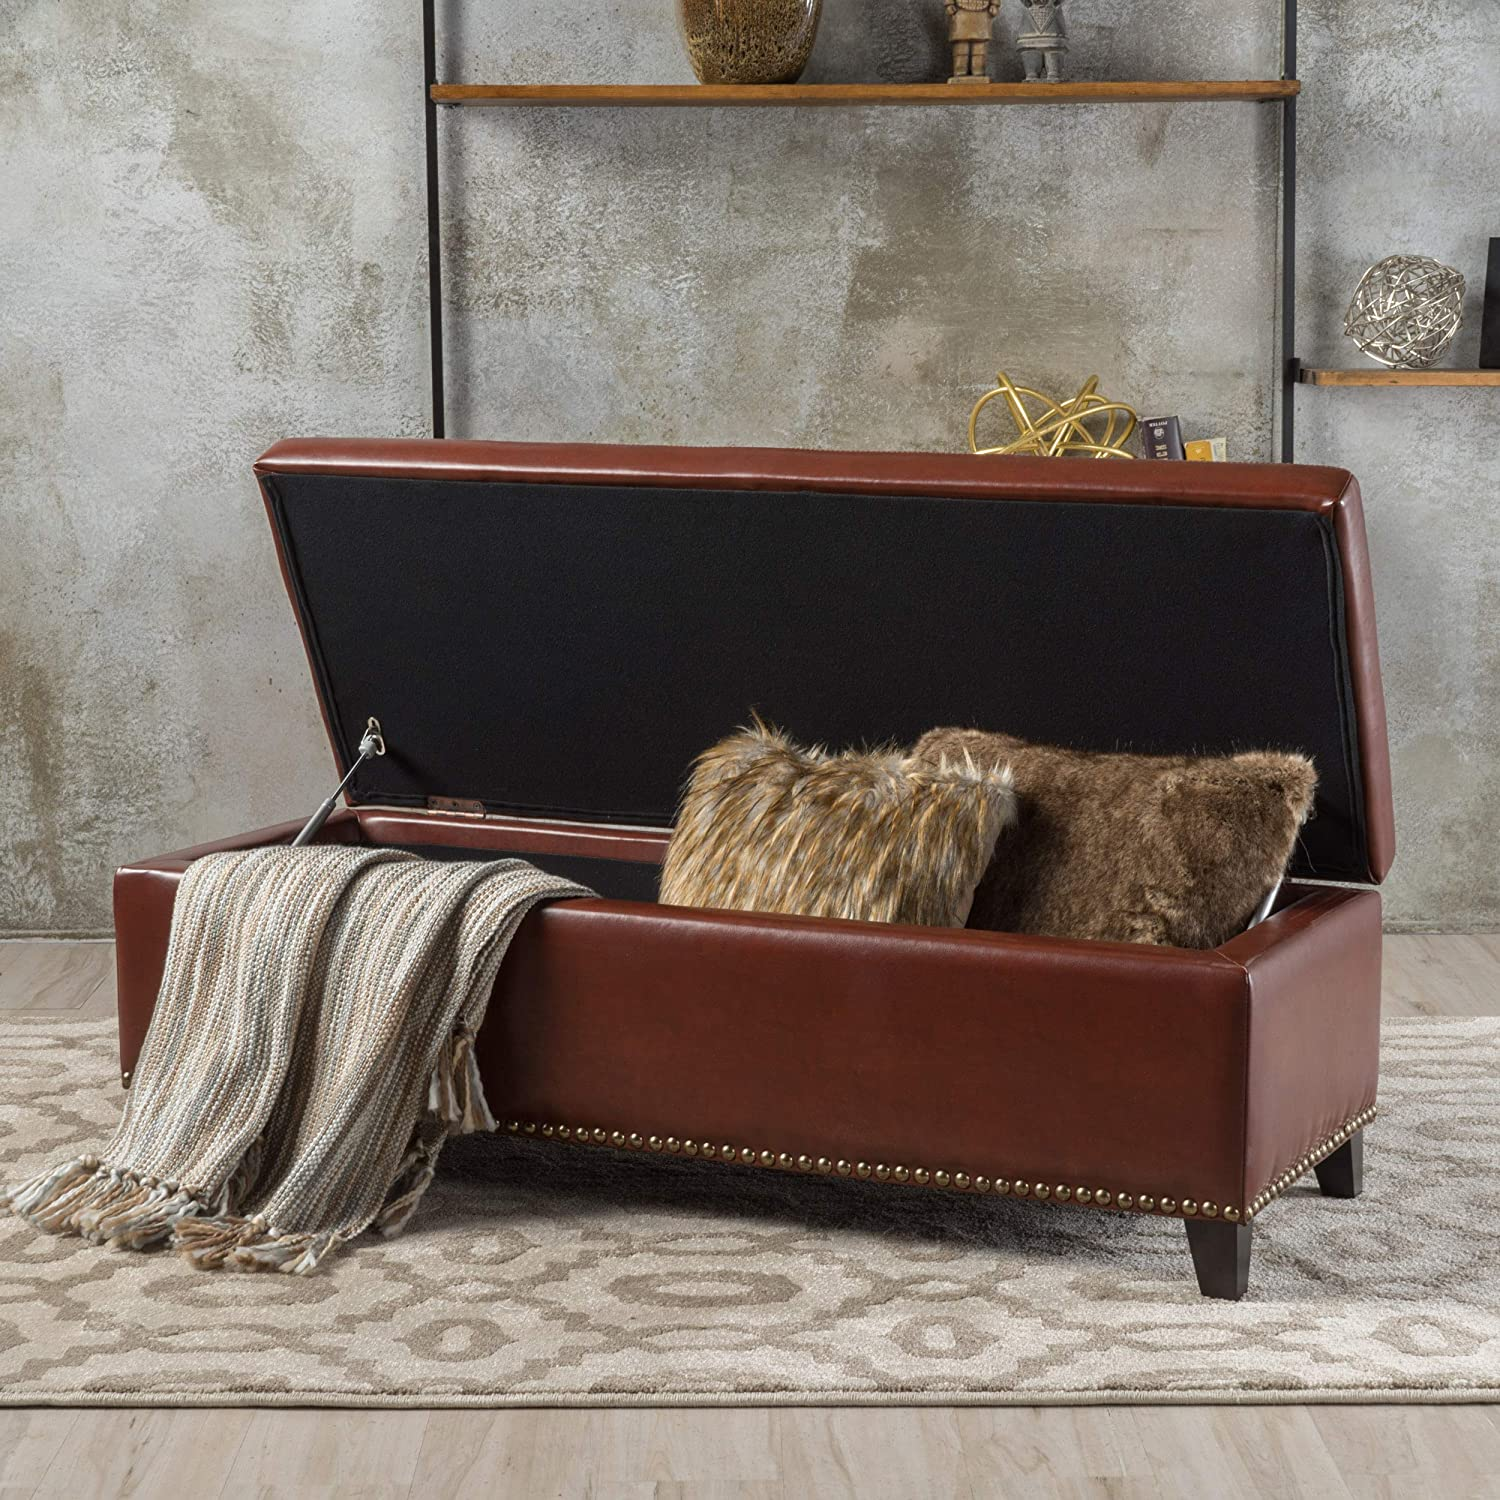 Great Deal Furniture 232552 Charleston Brown Leather Storage Ottoman,